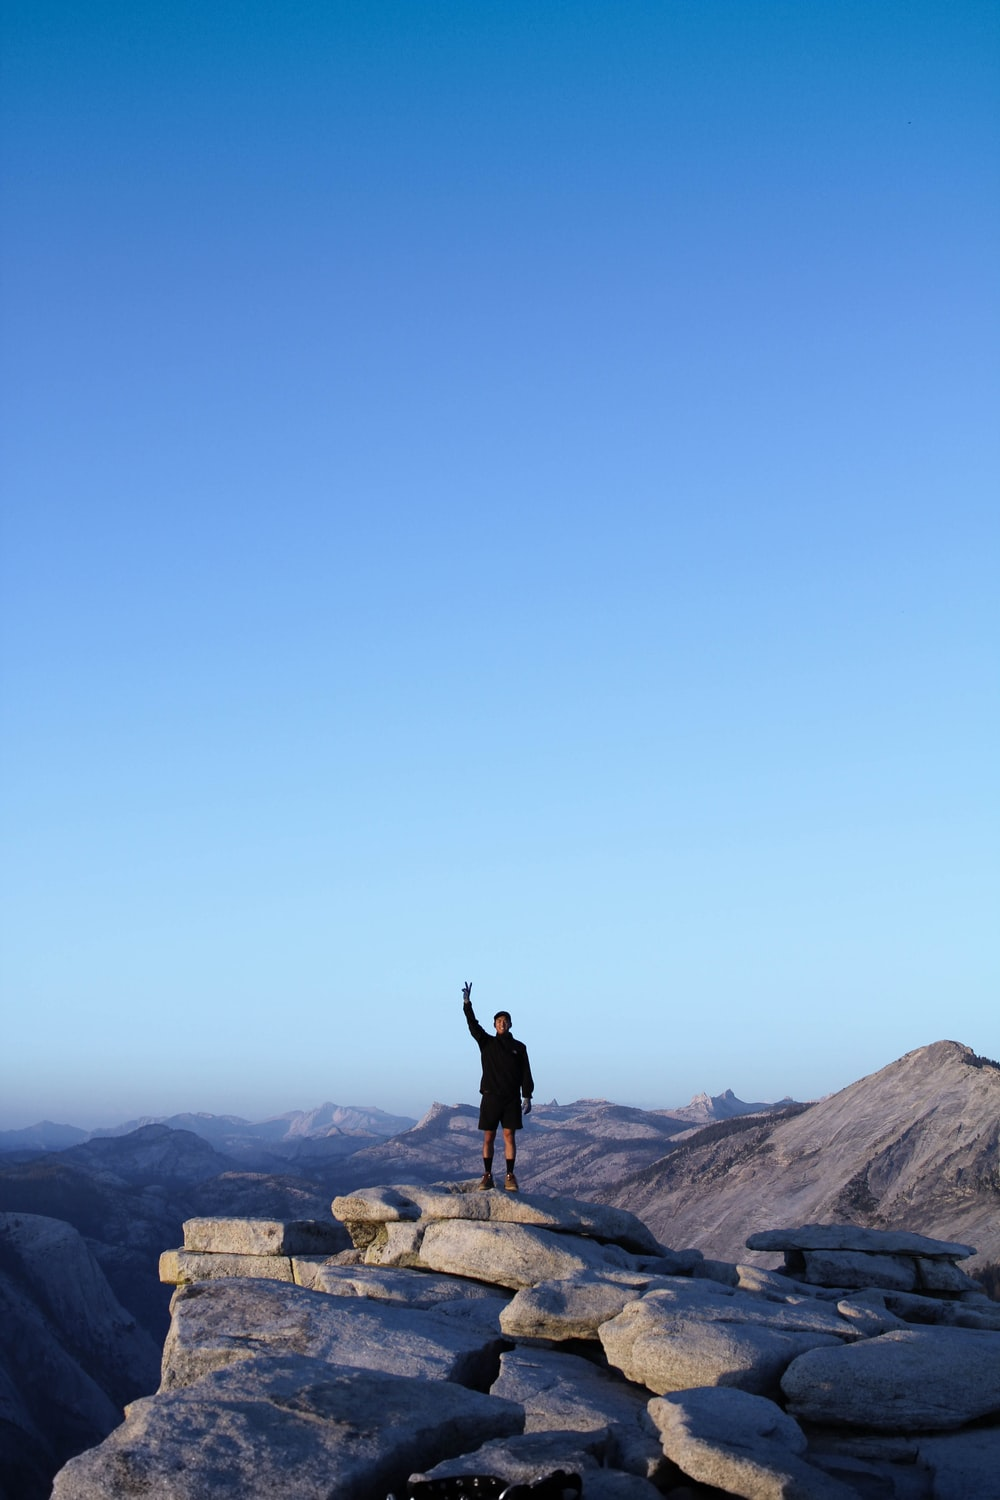 person standing on rocky cliff photography